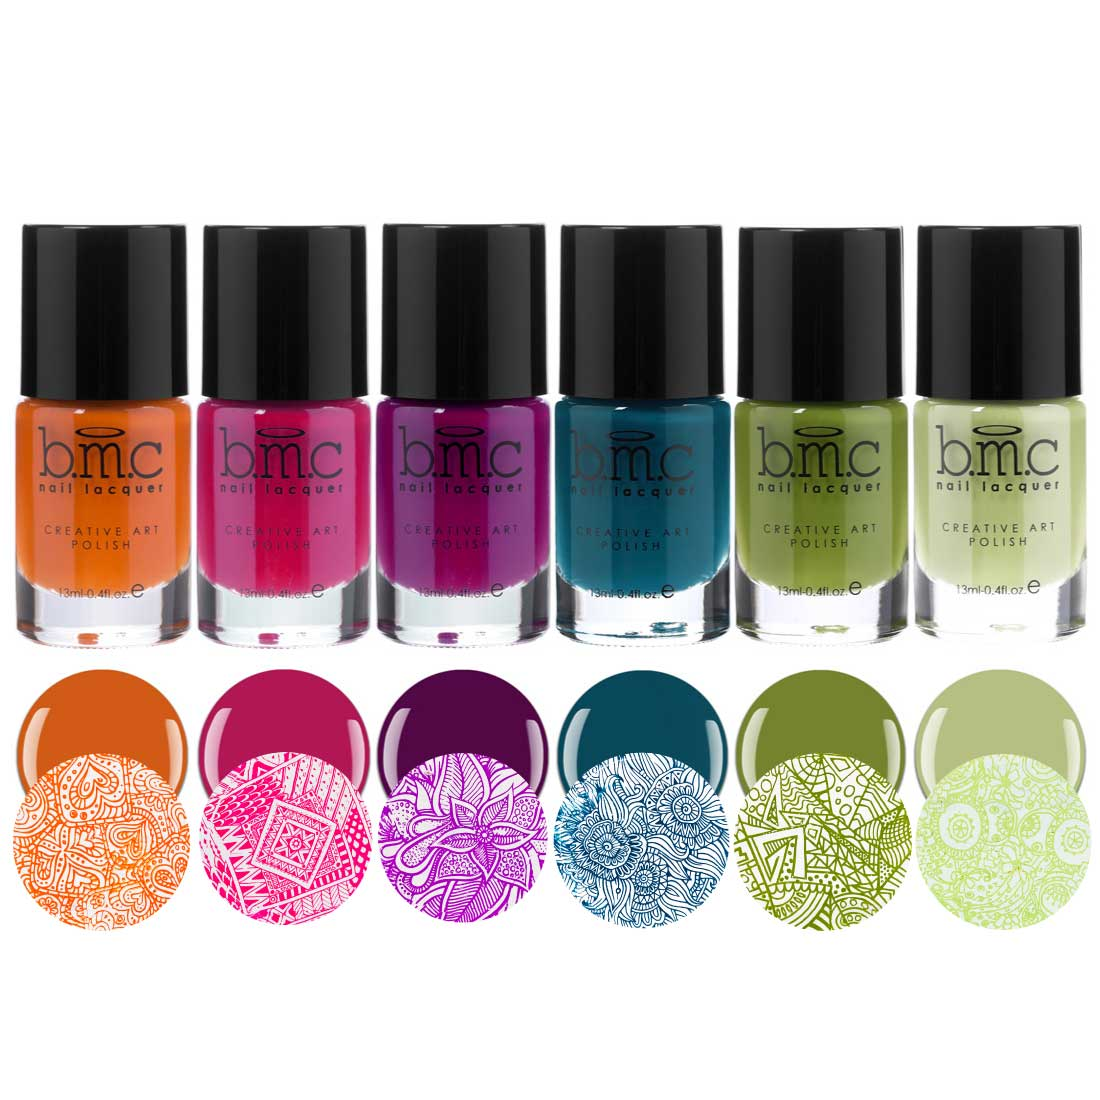 BMC Tropix Creamy Summer Fashion Creative Nail Art Stamping Polish Collection - 6 Colors